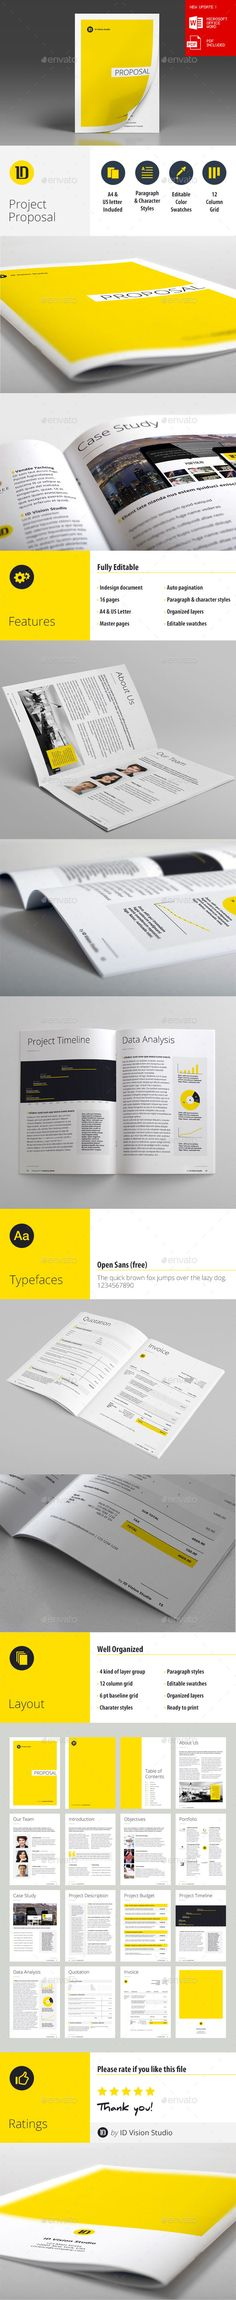 Construction Company Proposal Template Vol4 Proposal templates - project proposal word template